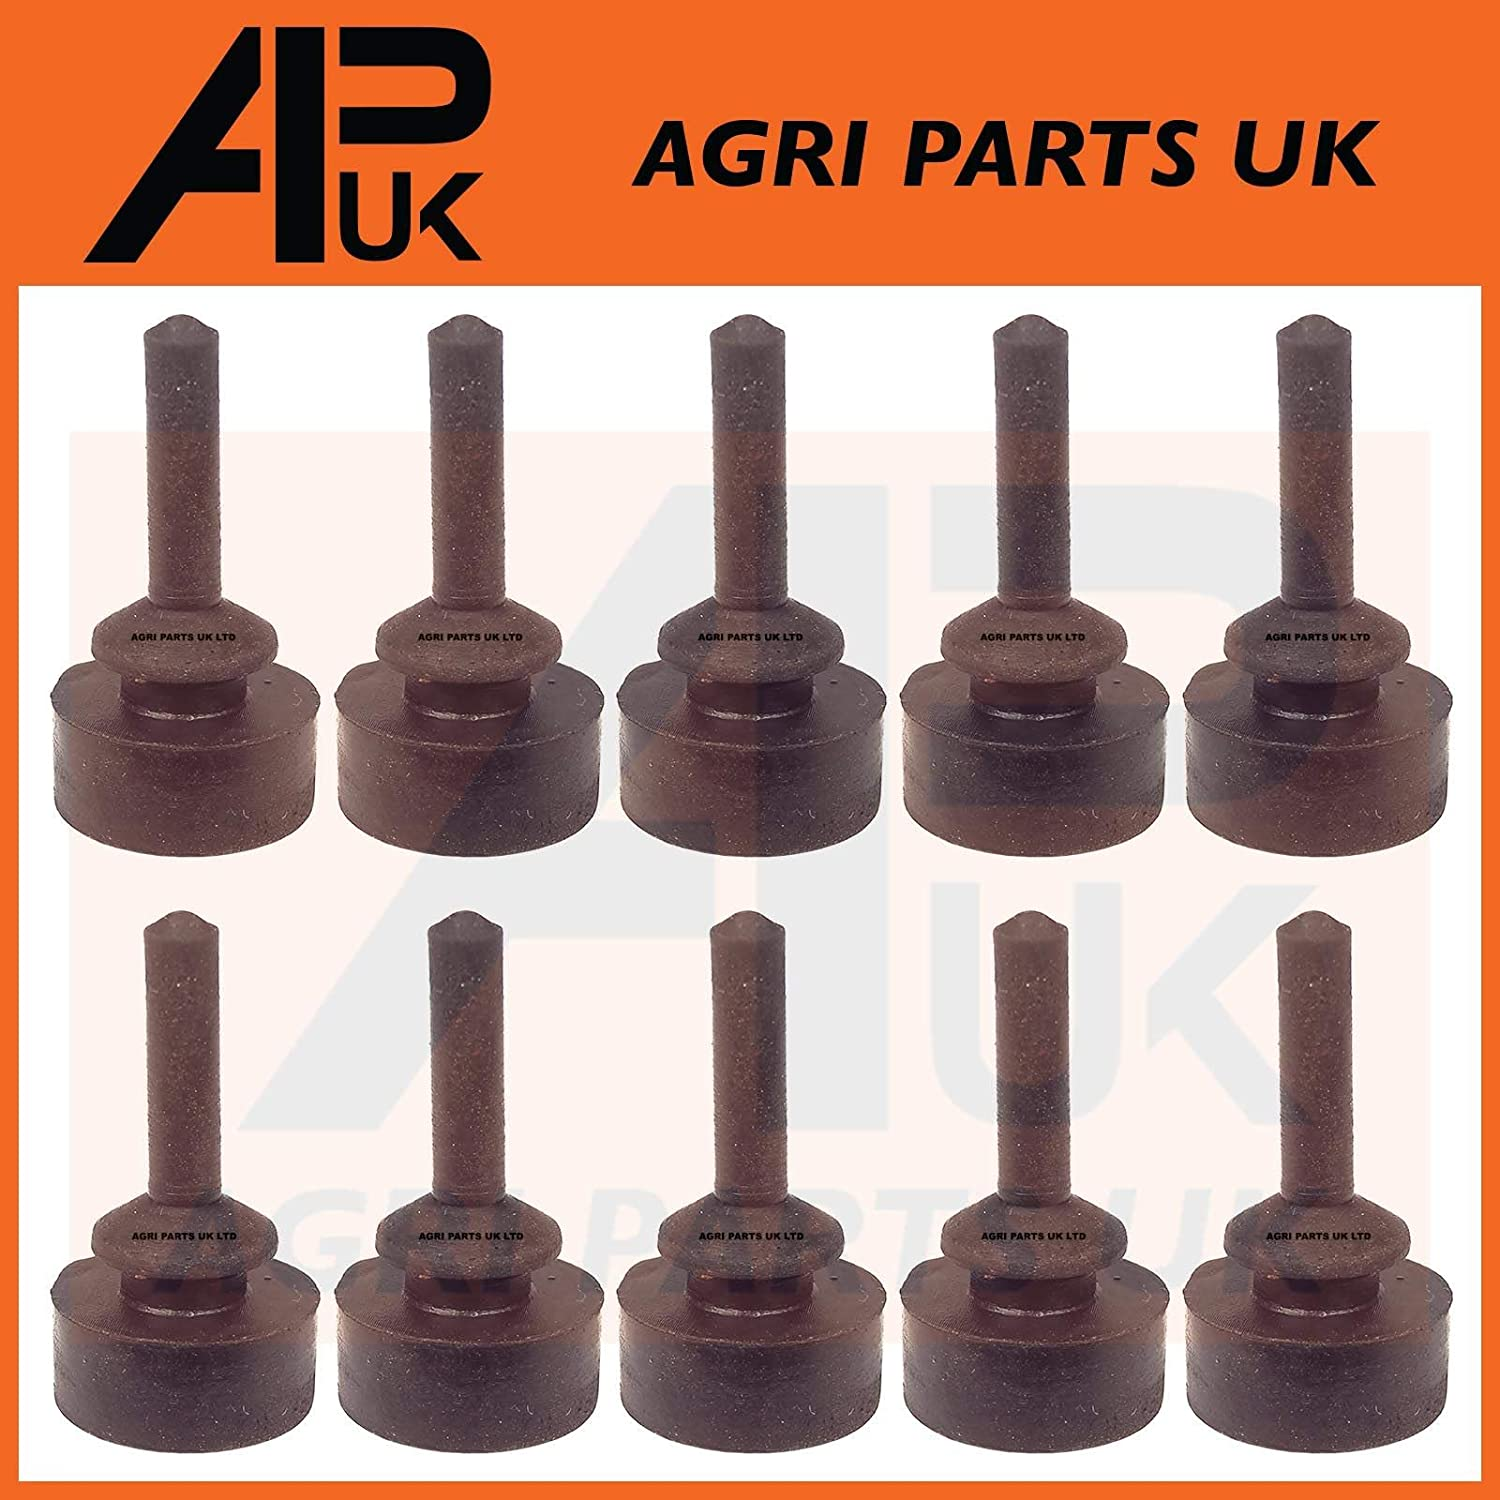 APUK 10 Massey Ferguson New Holland Tractor Bonnet Panel Rubber Pad Grommet